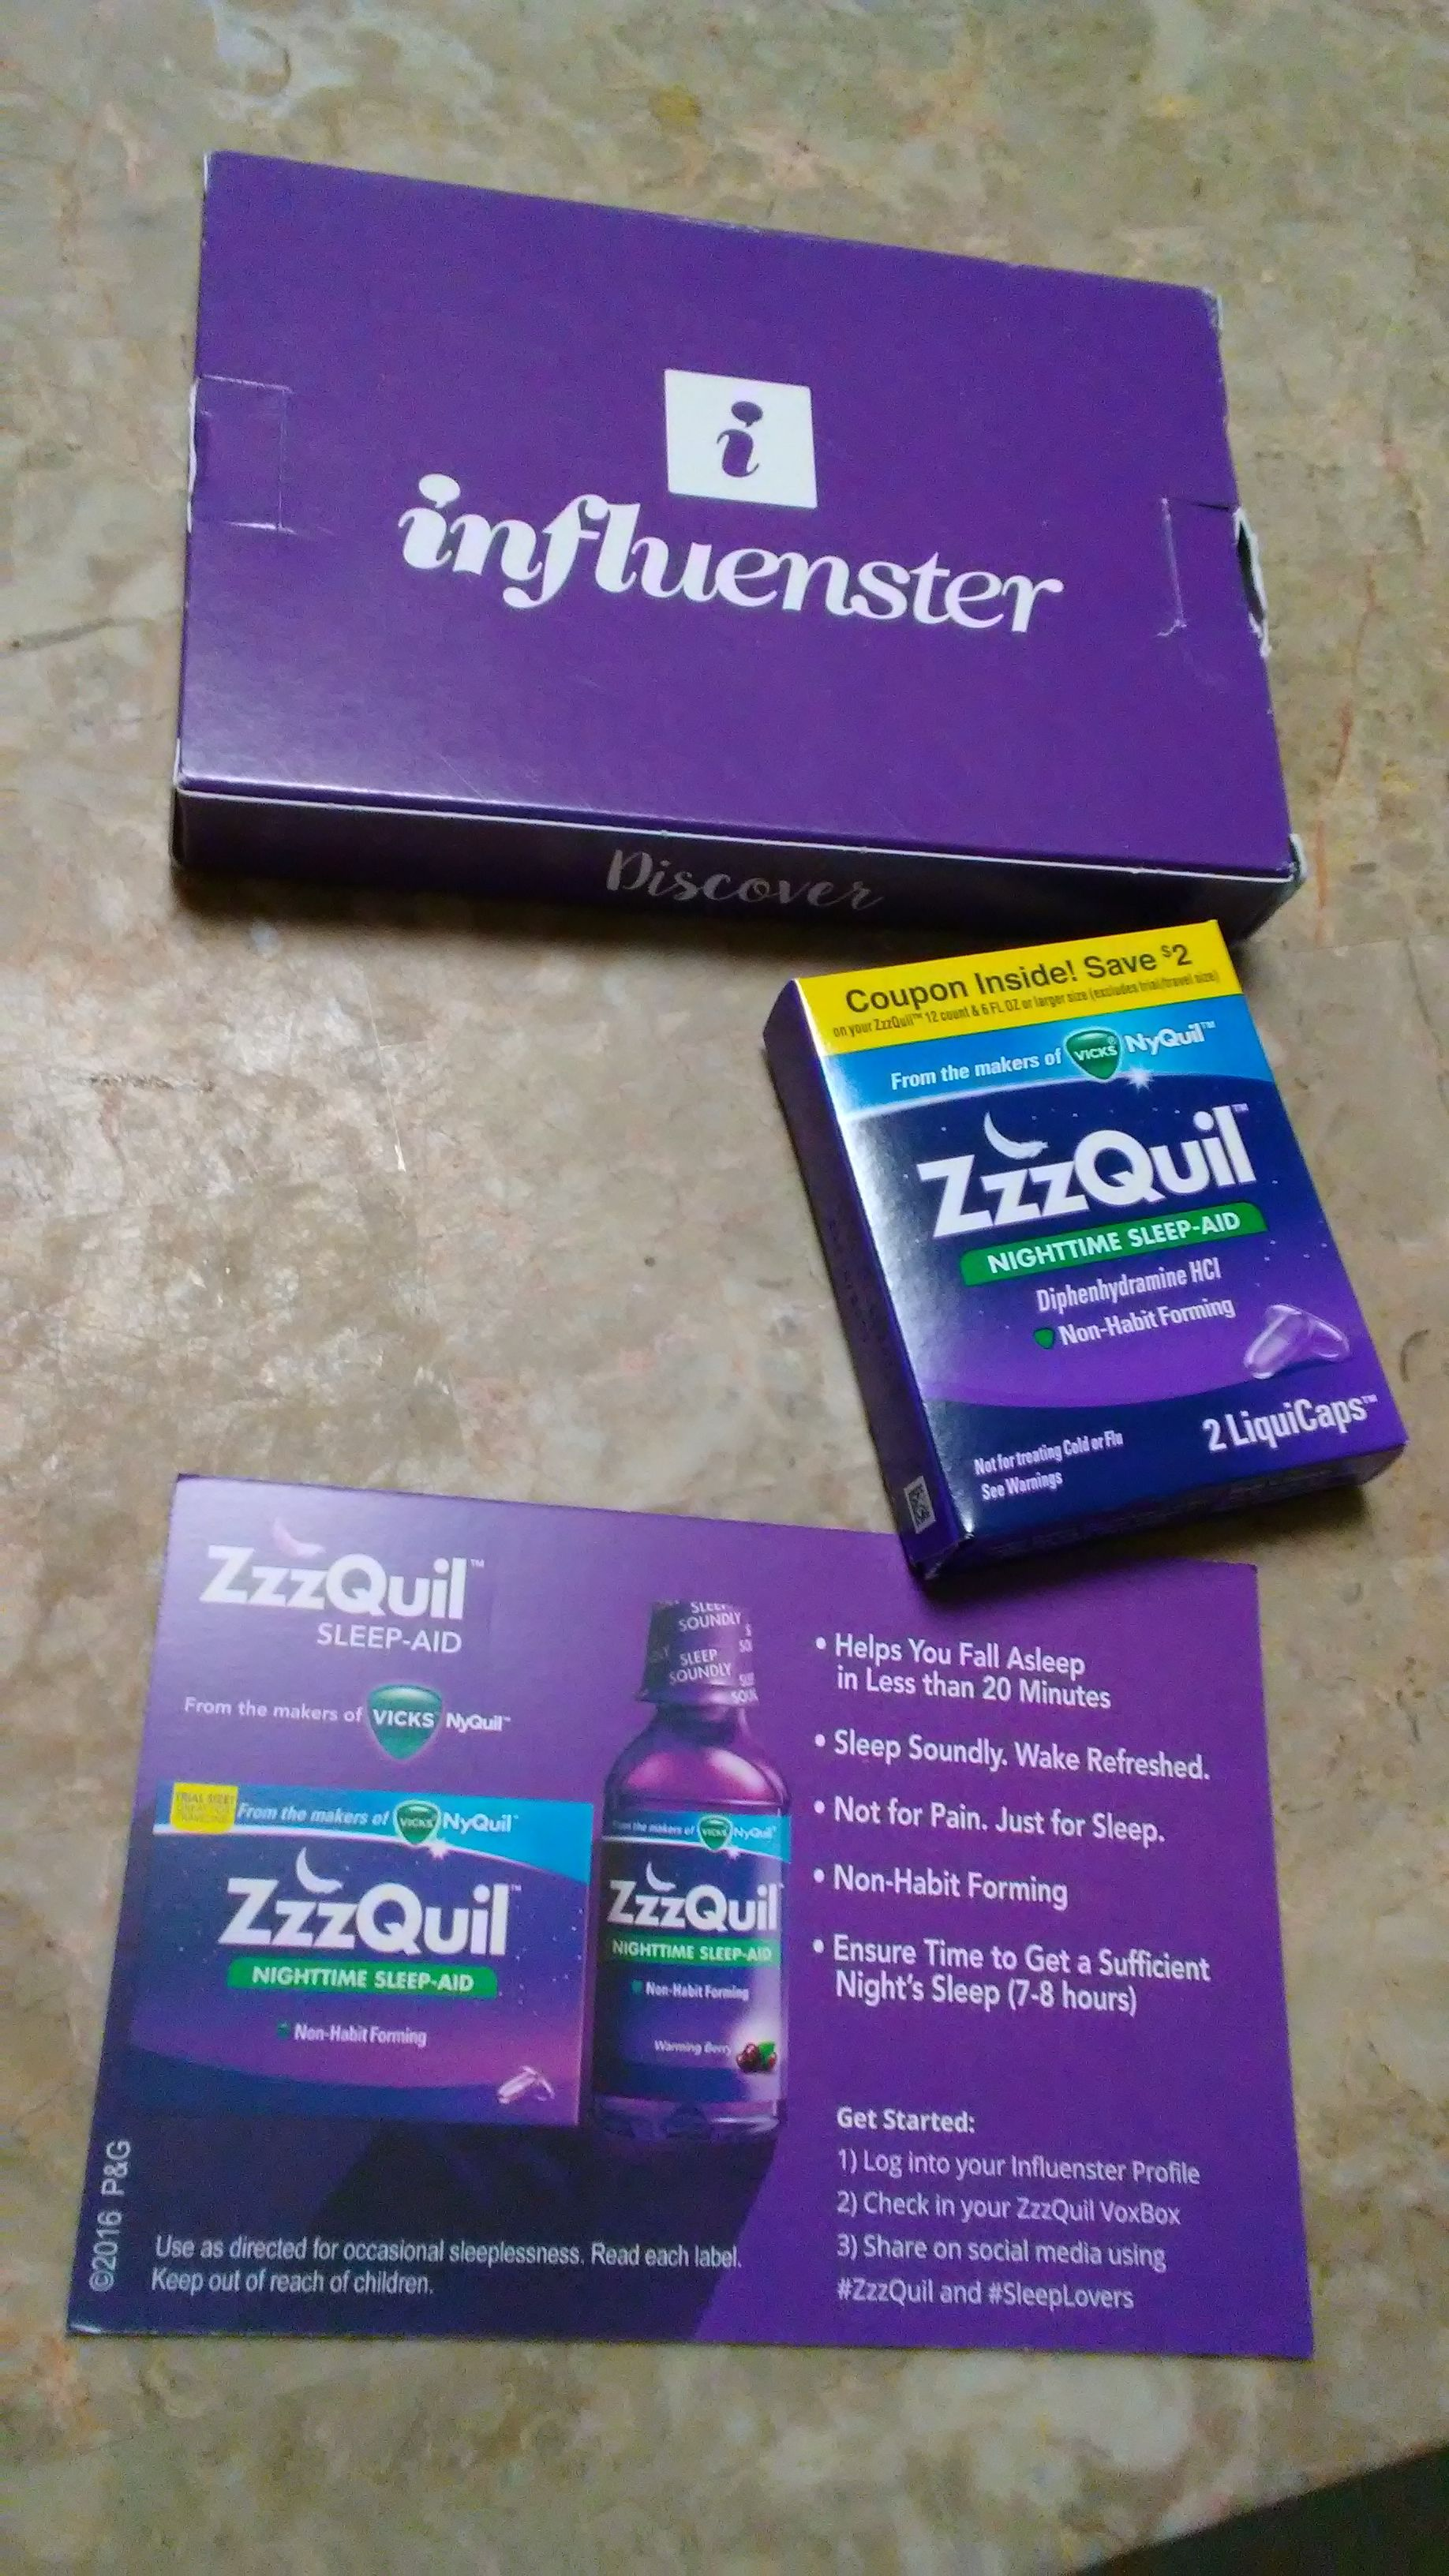 I Got My Zzzquilvoxbox I Received Zzzquil For Testing Purposes From Influenster I Don T Take Zzzquil But I Nighttime Sleep Aid Habit Forming Influenster